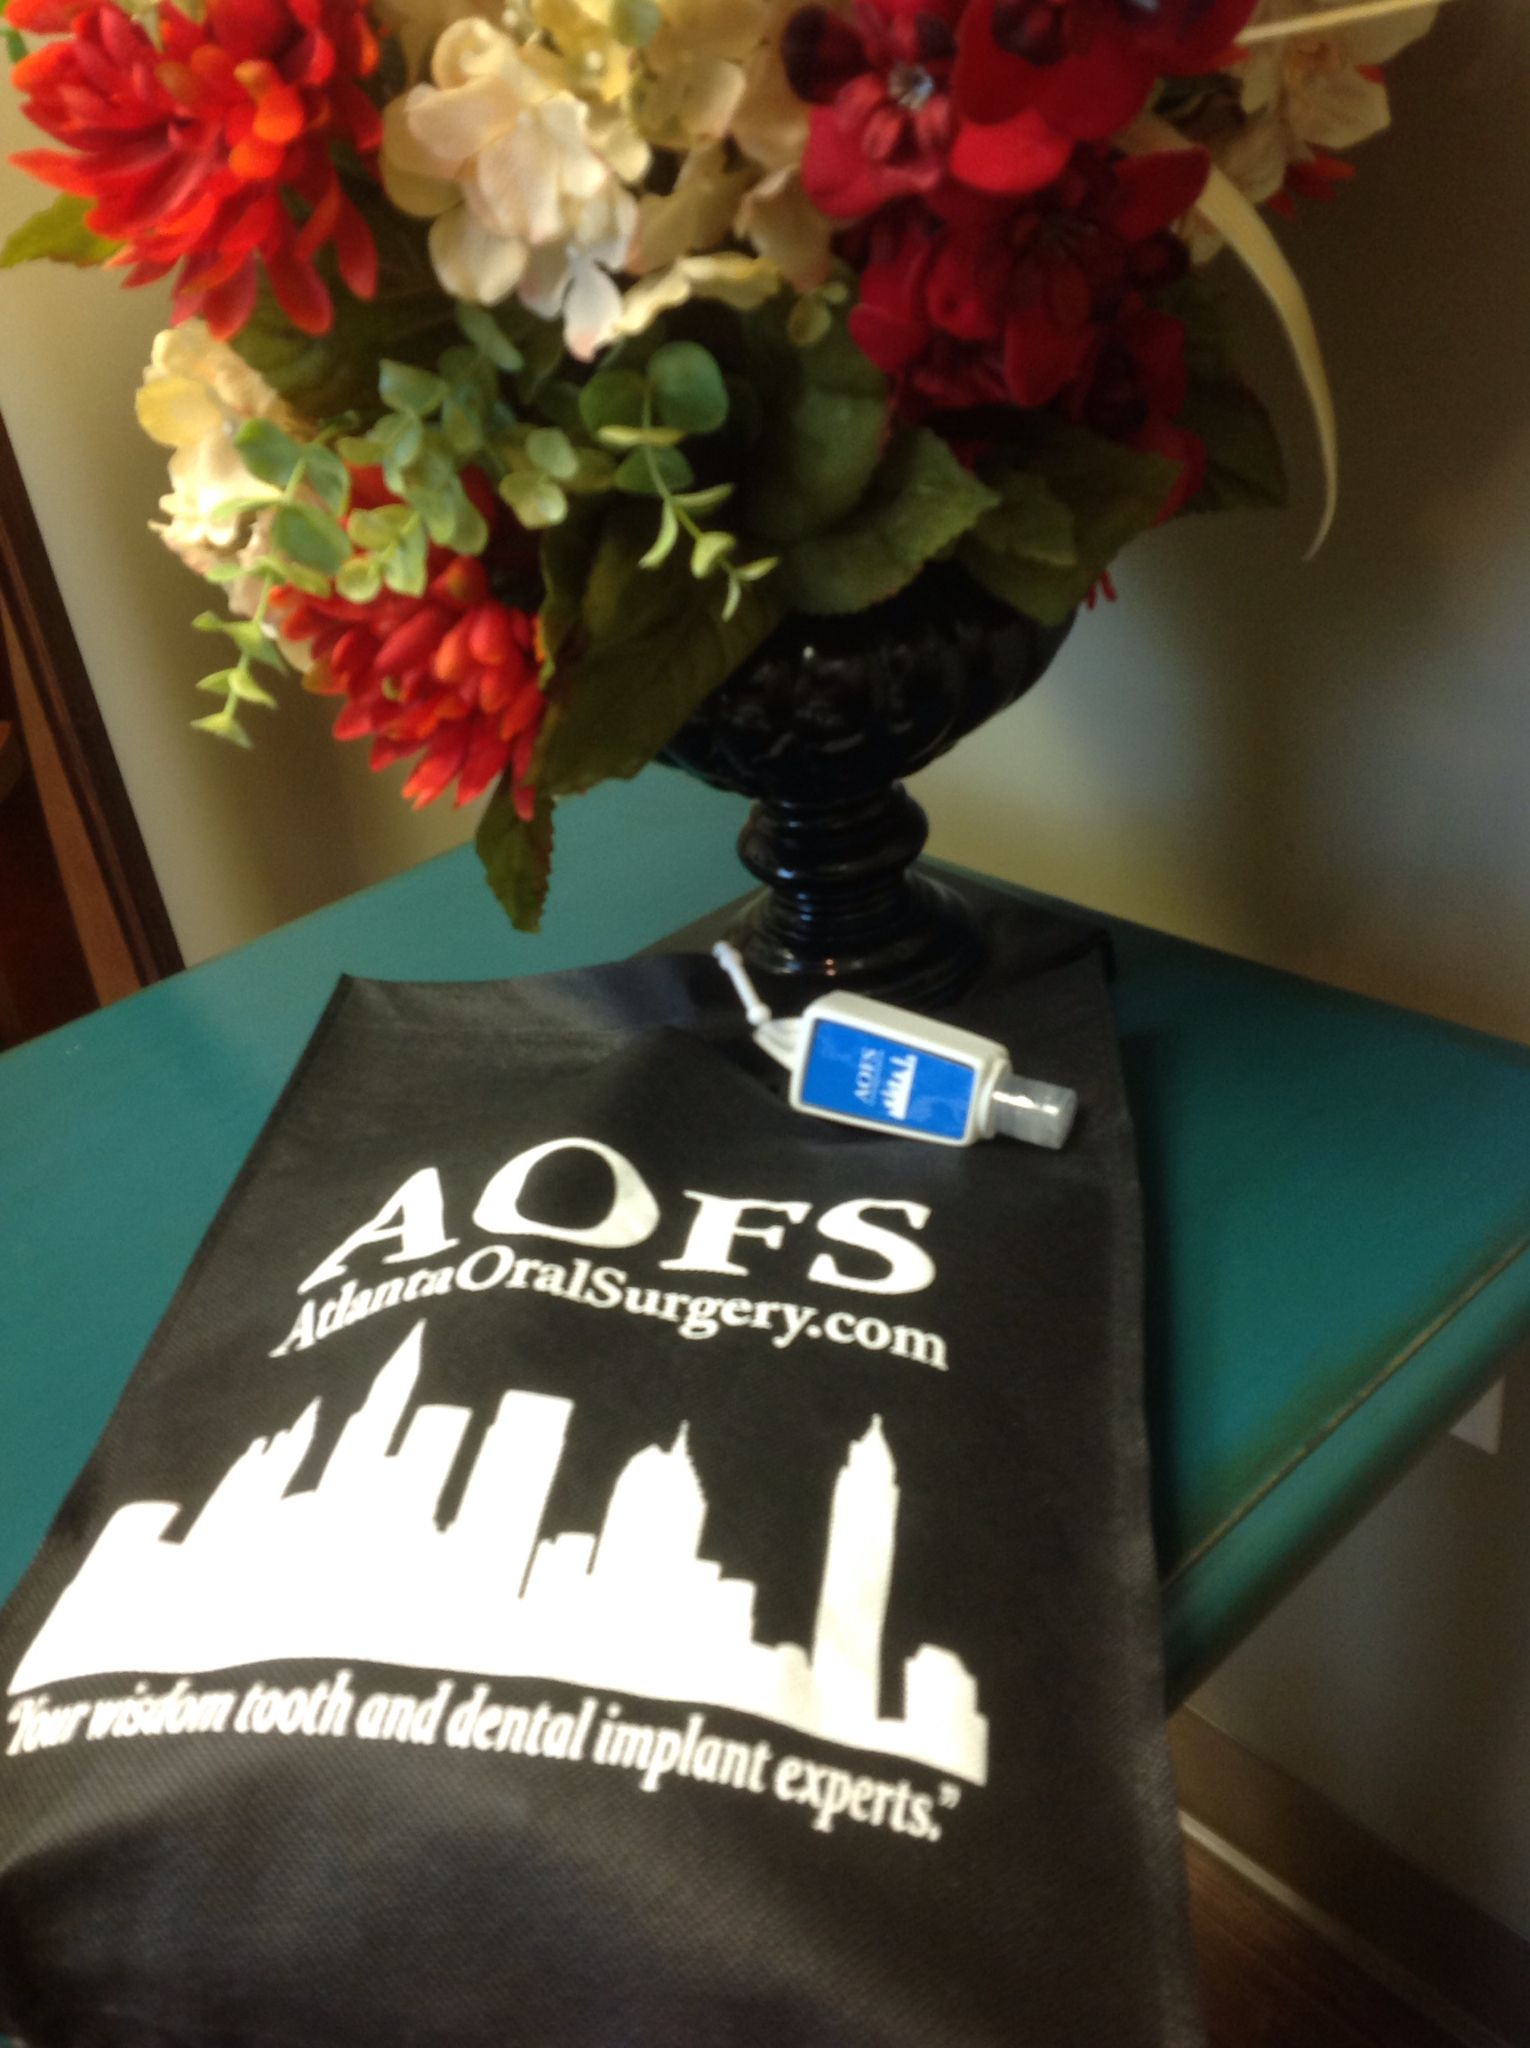 Cute package from Atlanta Oral Surgery #AtlantaOralSurgery ...